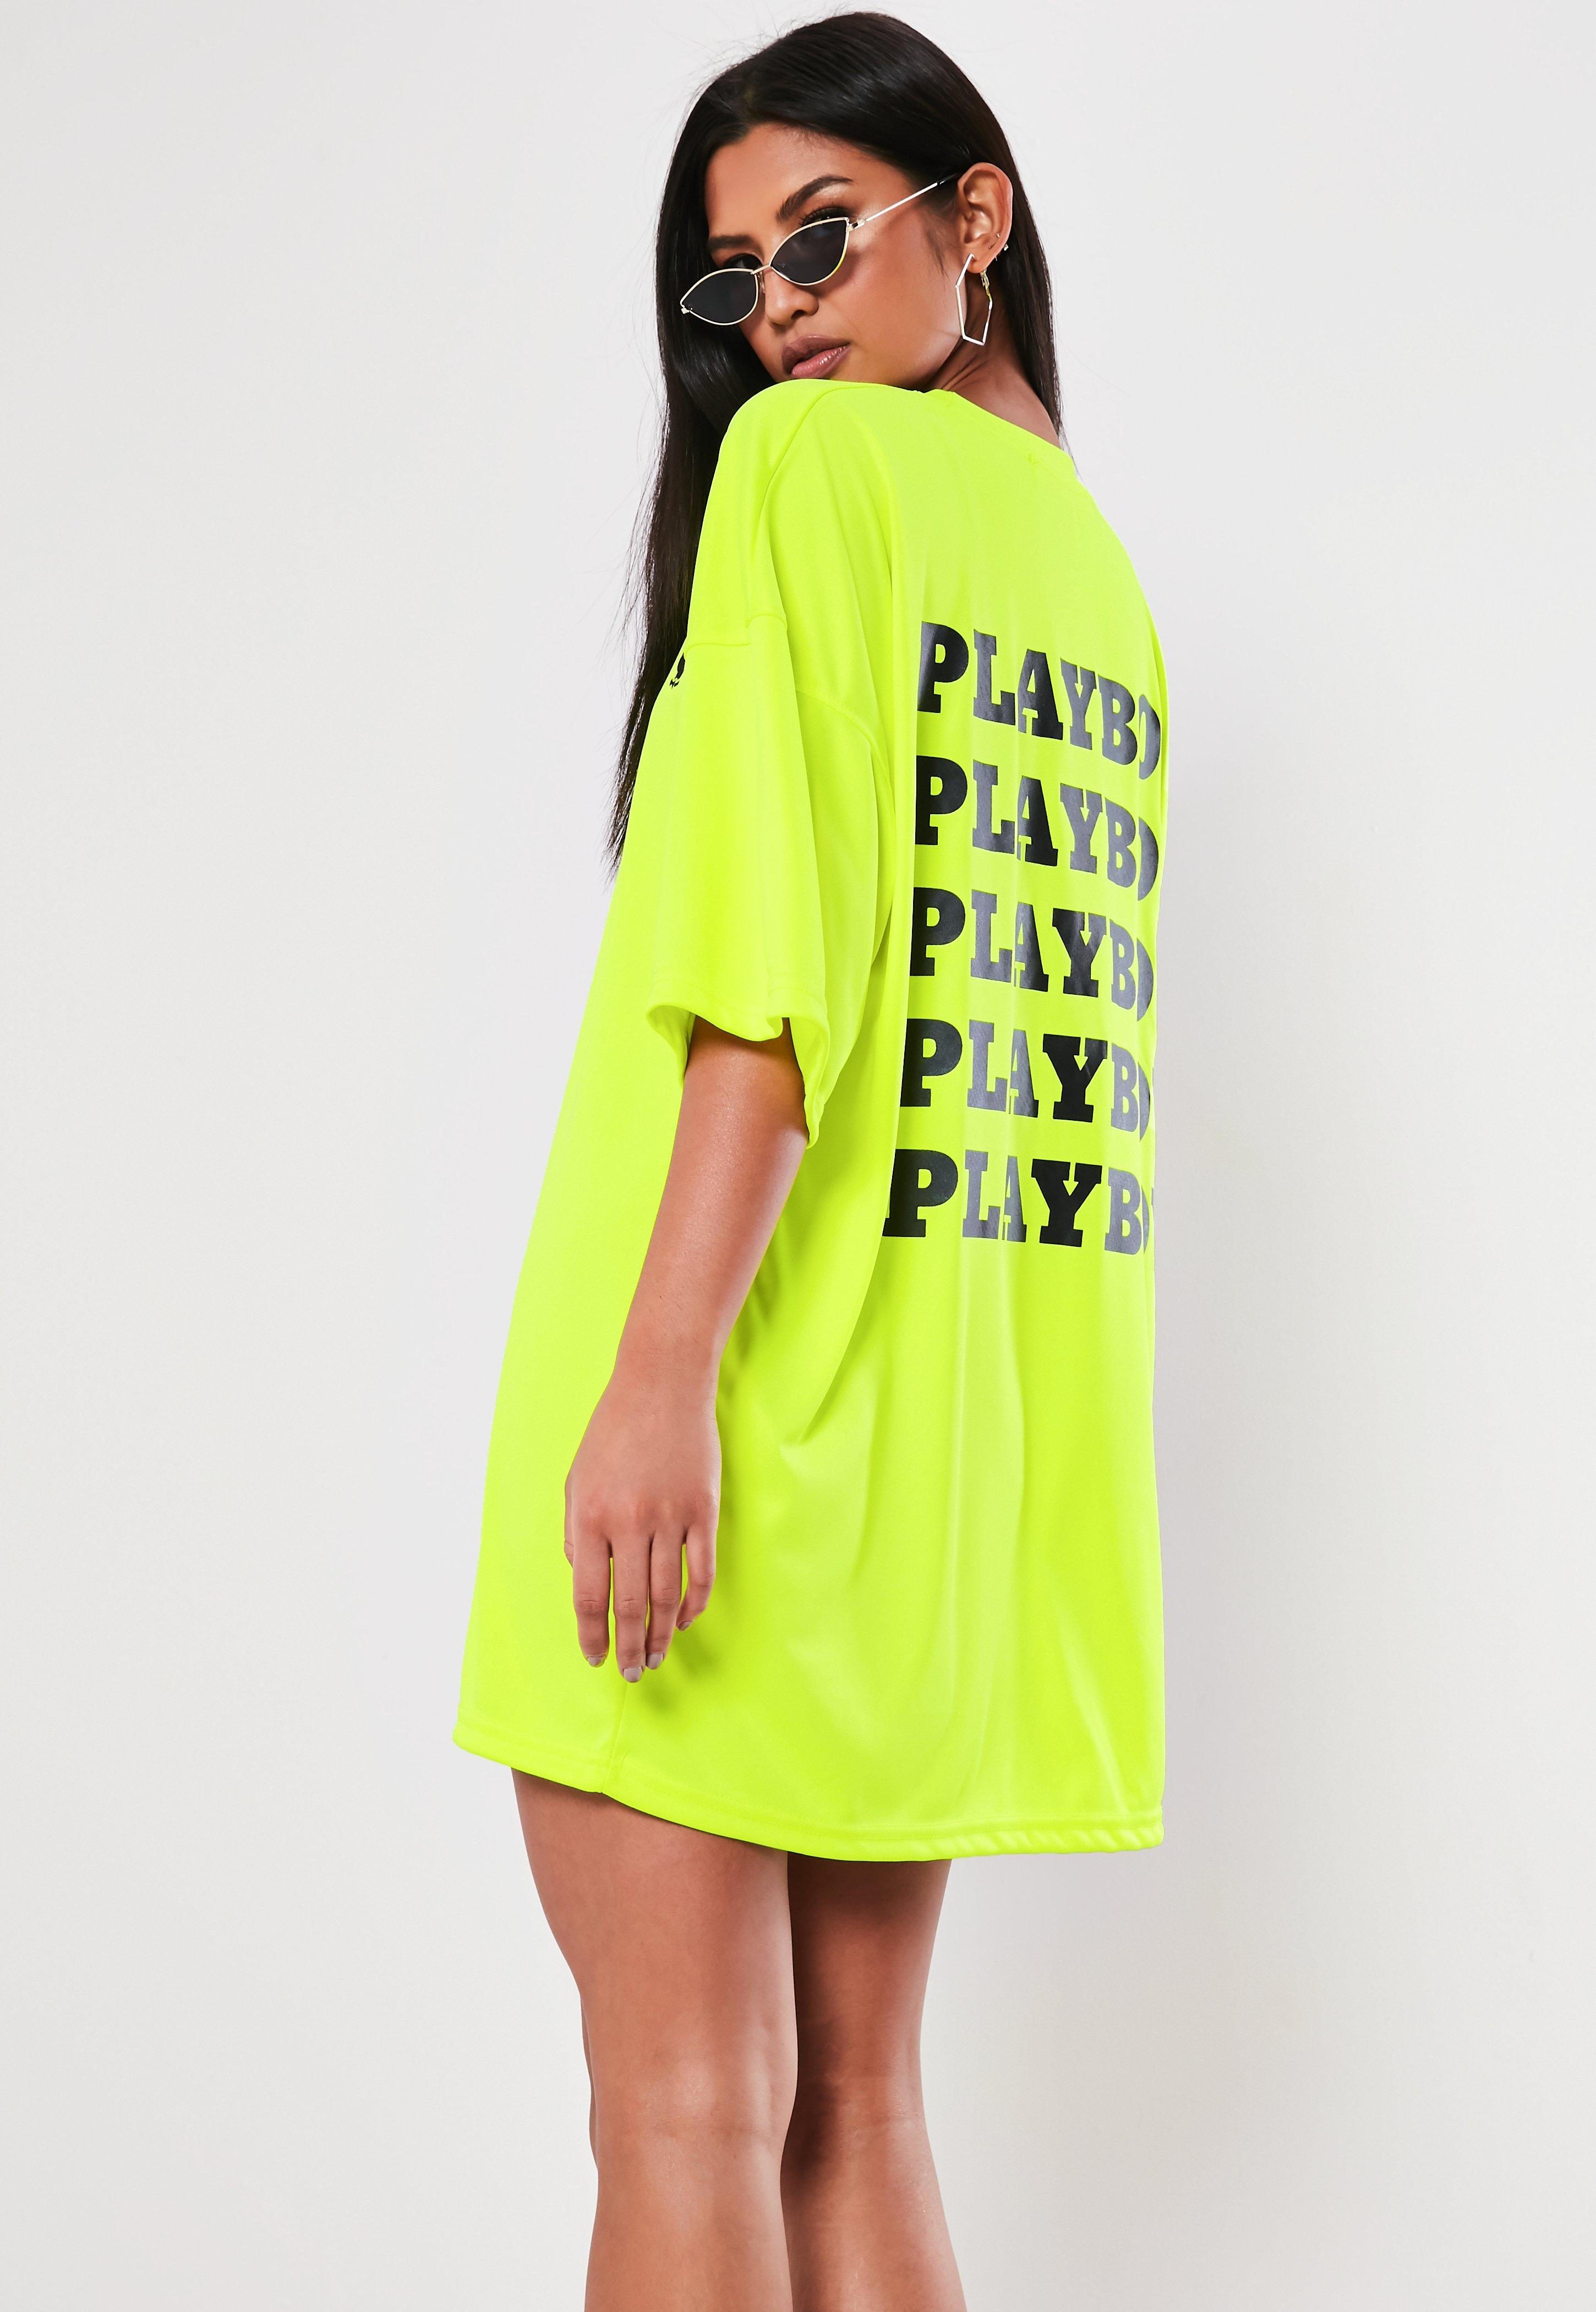 7b6d7744 Playboy Clothing | Playboy T-Shirts, Necklaces & Tracksuits – Missguided